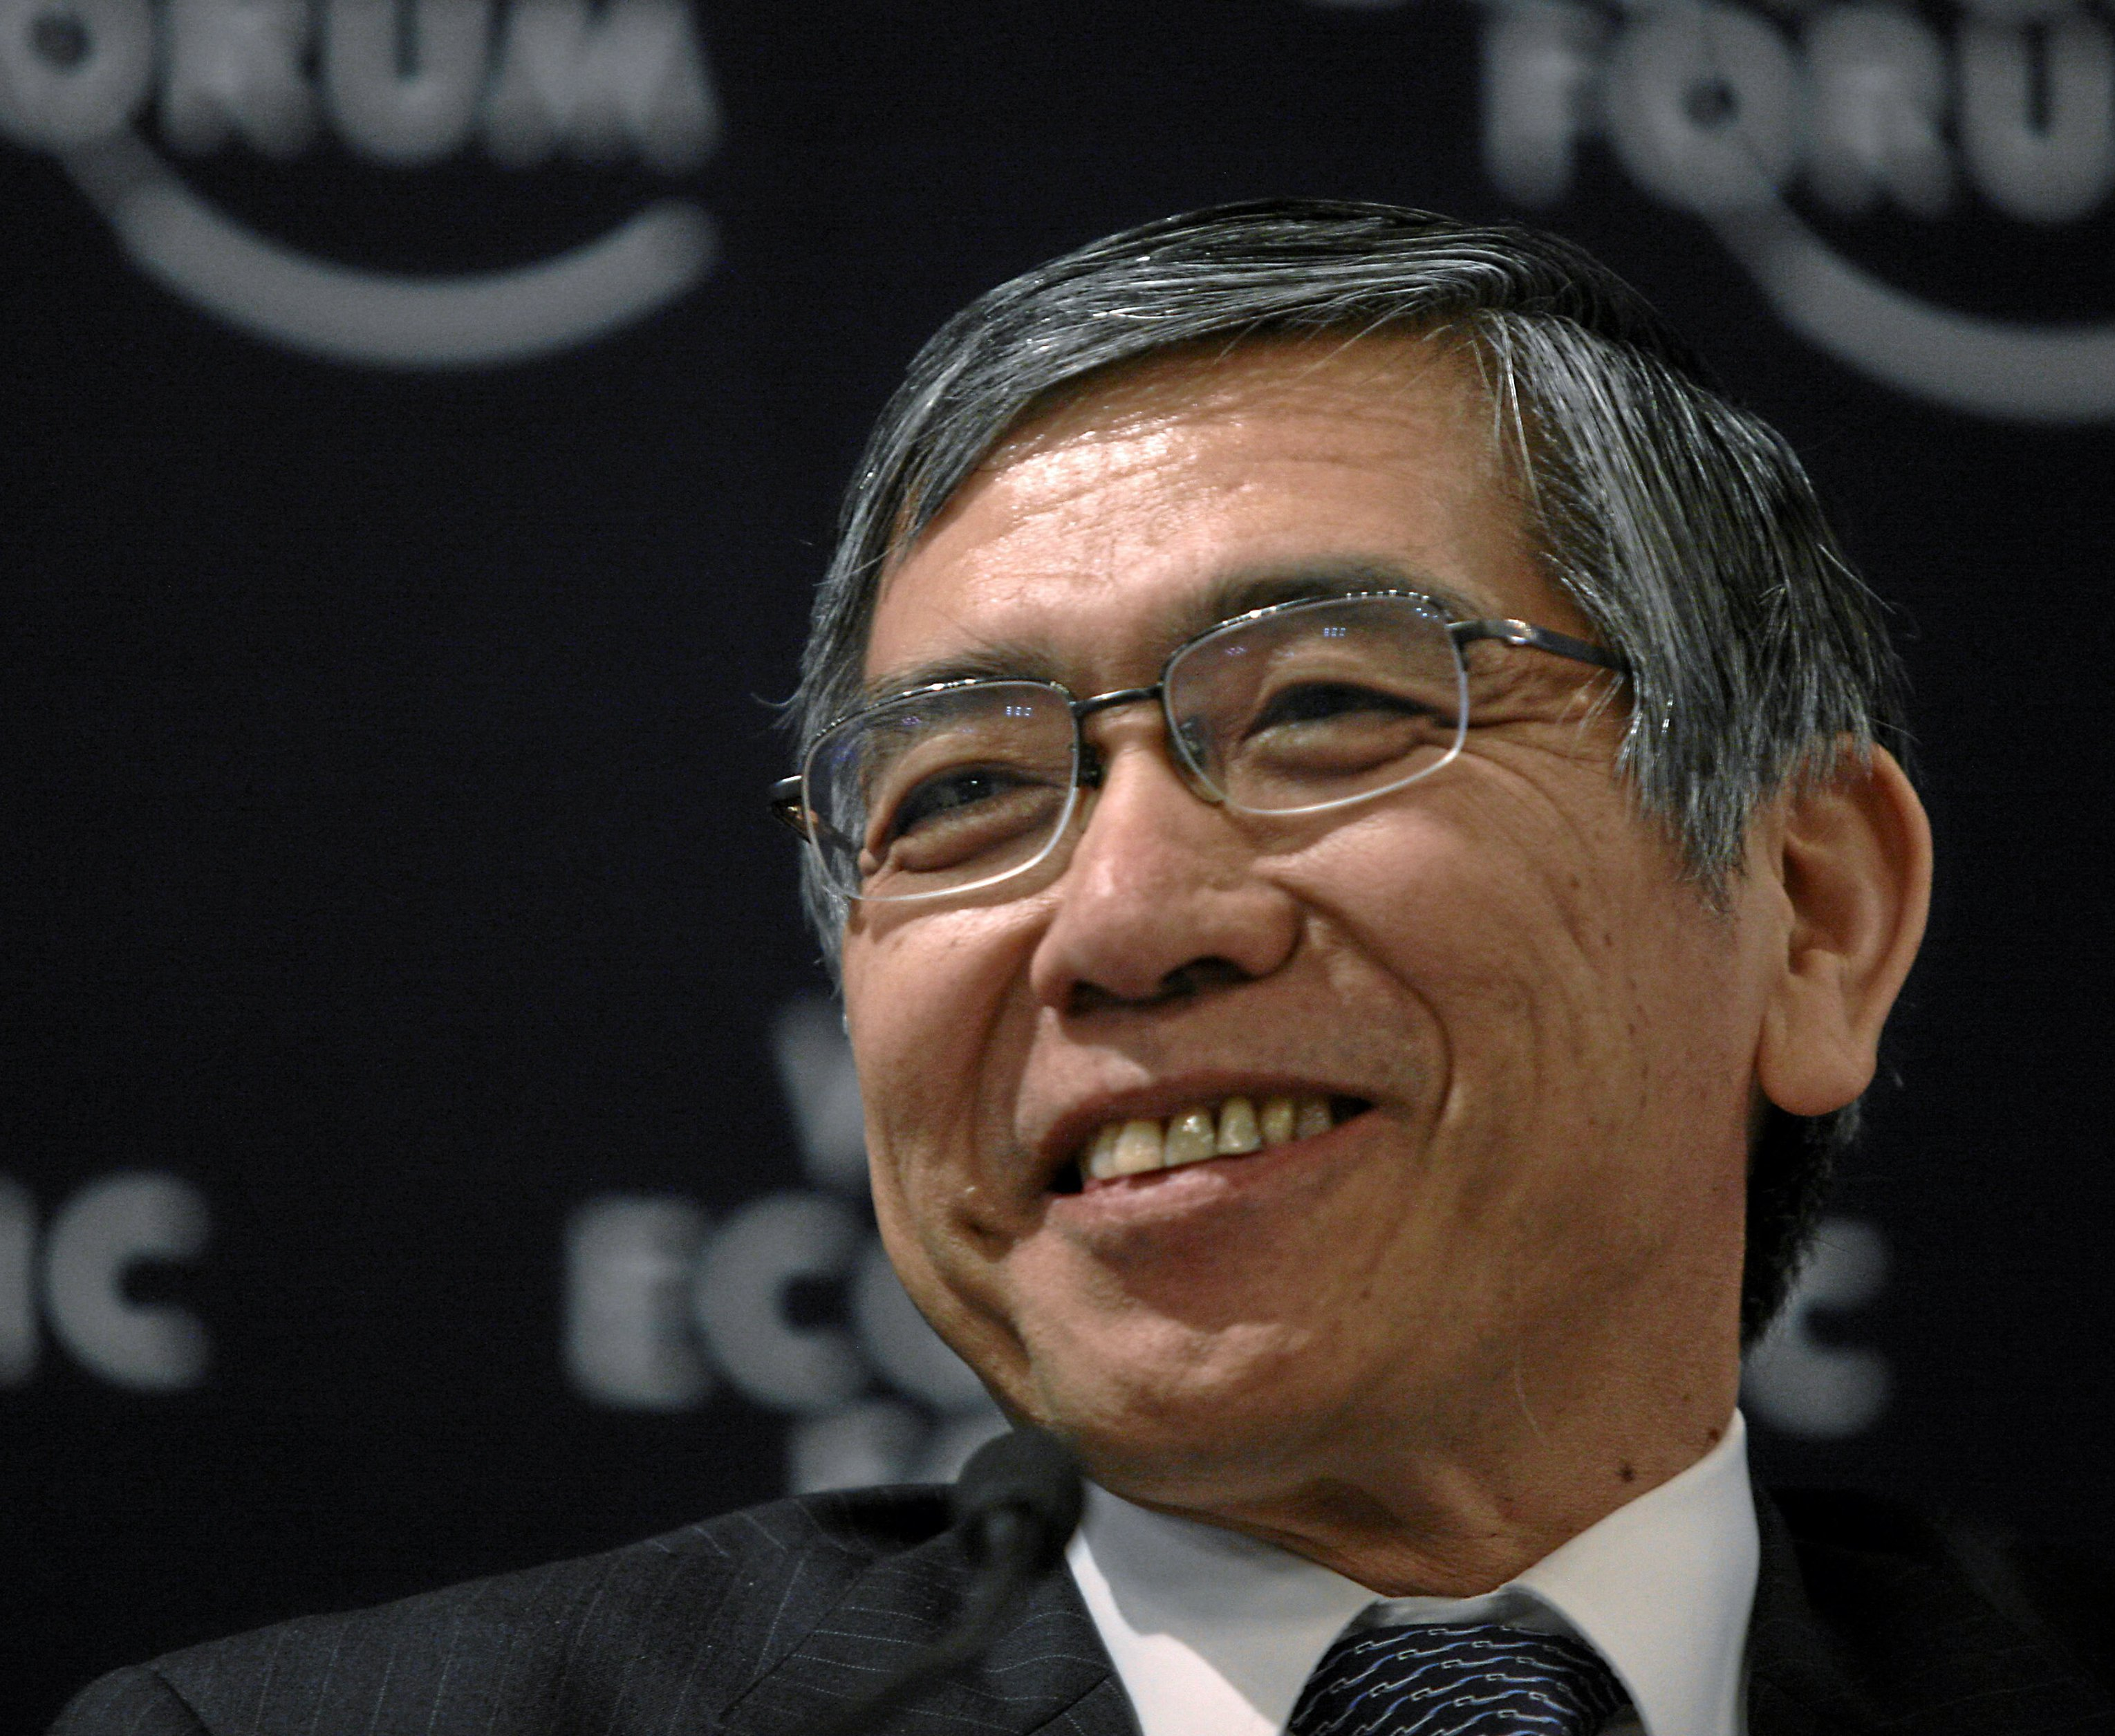 Bank of Japan Governor Haruhiko Kuroda cc Sebastian Derungs